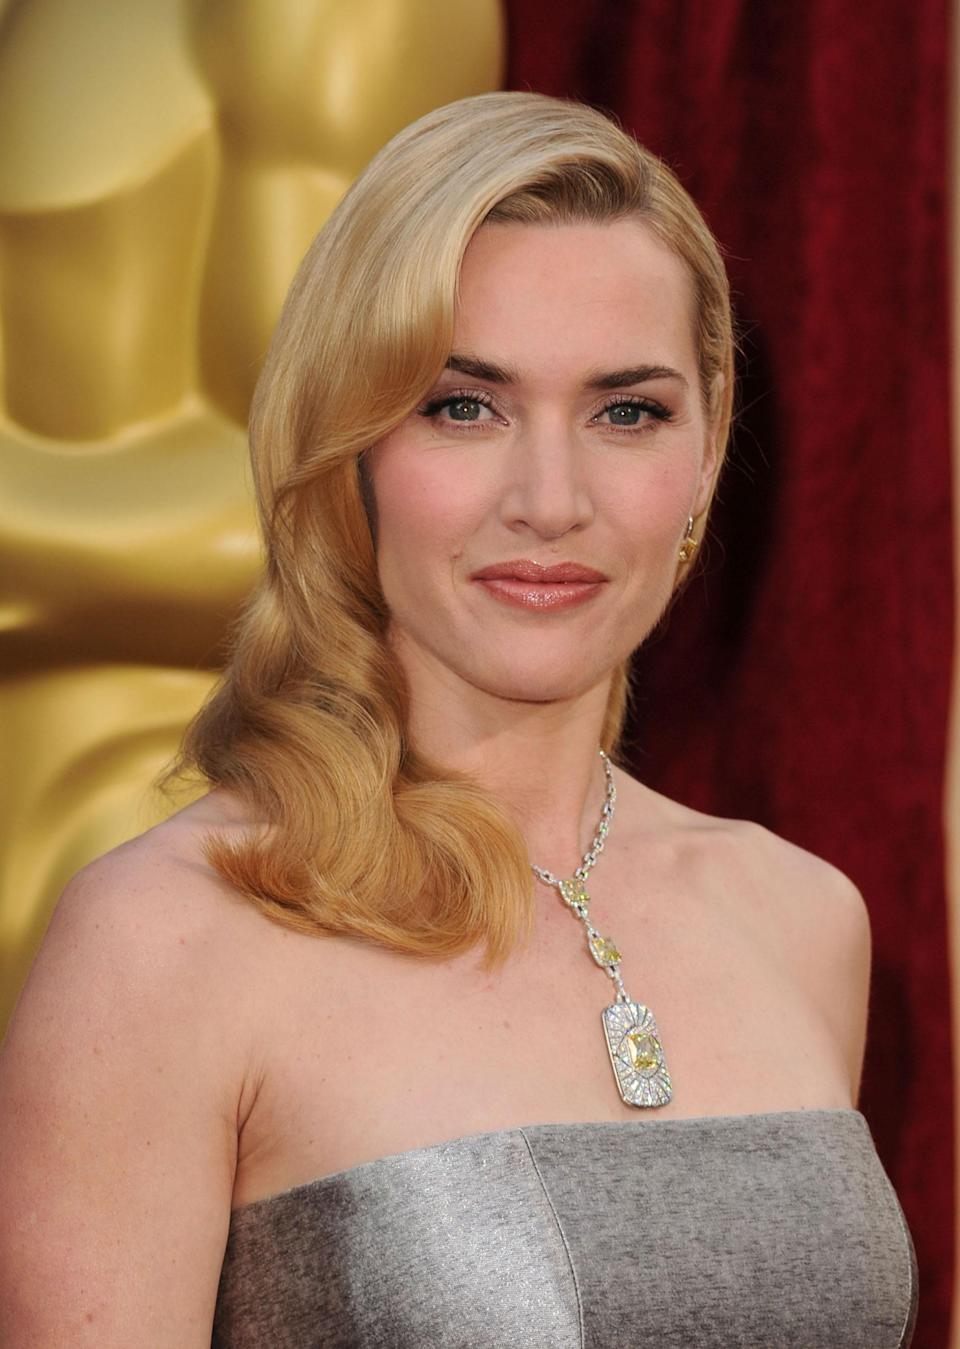 The Art Deco lines of Kate Winslet's stunning pendant reference Tiffany and Co.'s history, but the Oscar winner's bling was created especially for her. Anchored by a unique set of yellow diamonds, the piece was later valued at $2.5 million.